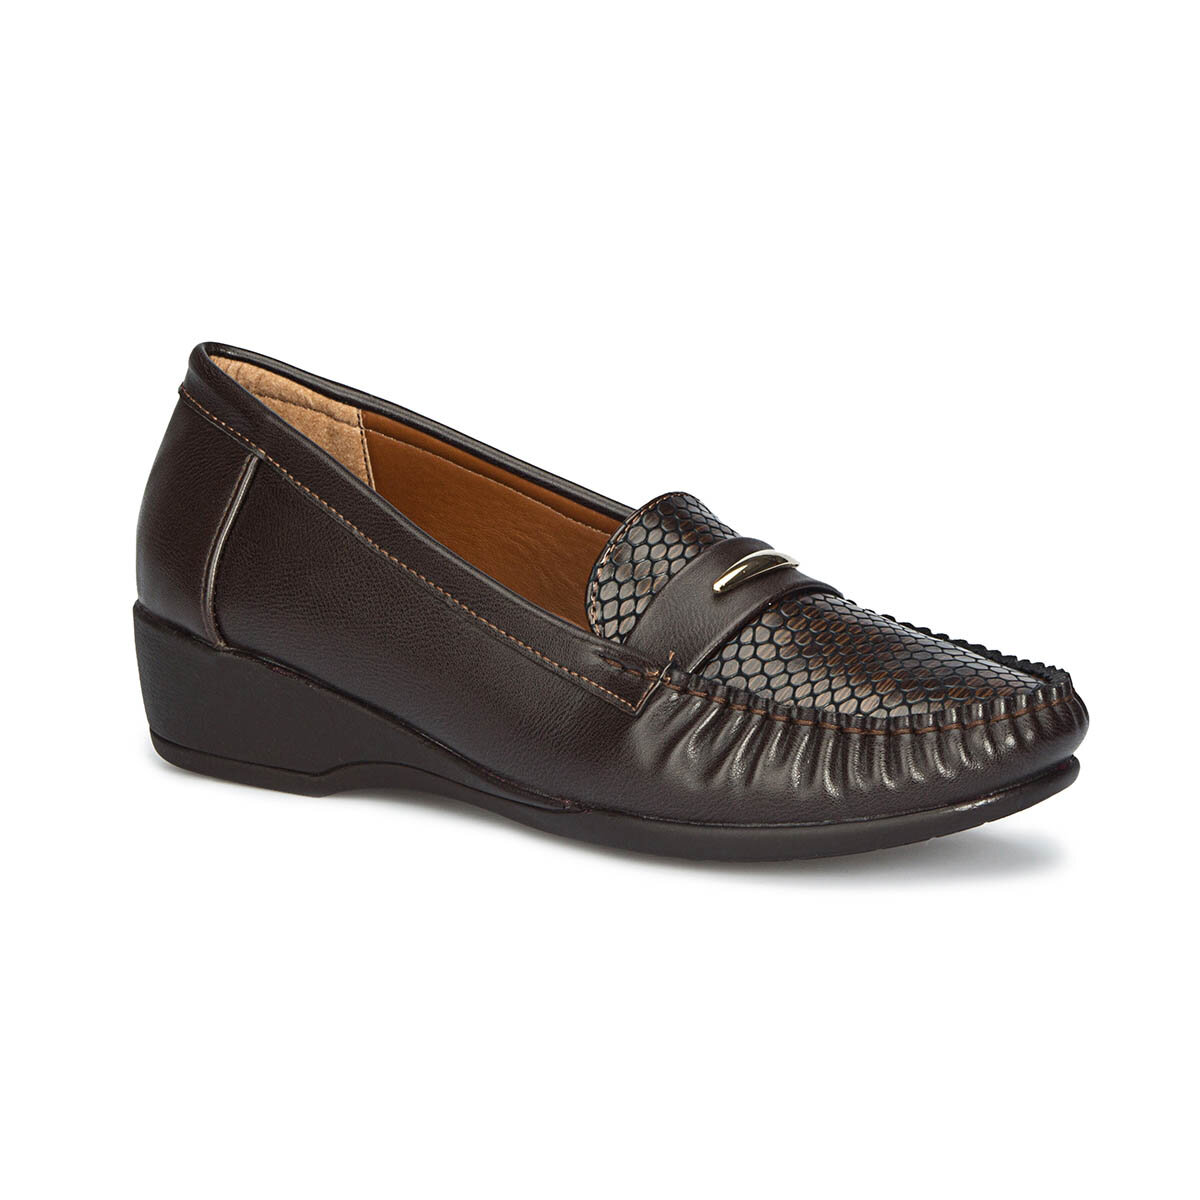 FLO 71.157282.Z Brown Women Loafer Shoes Polaris